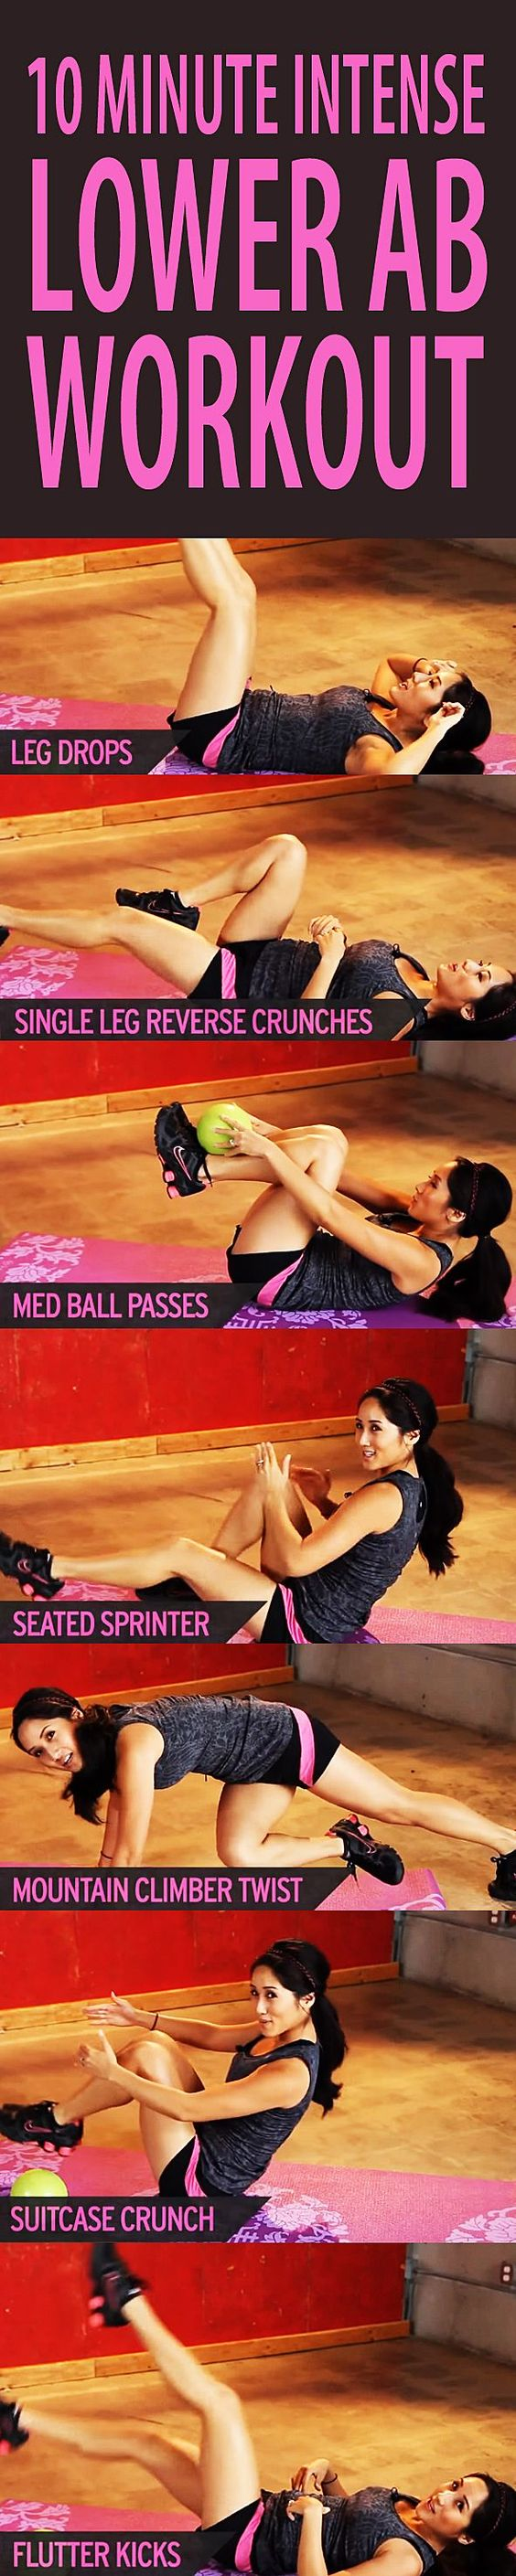 This 10 minute workout video will lead you through a very INTENSE workout routine that will target specifically the lower abs.